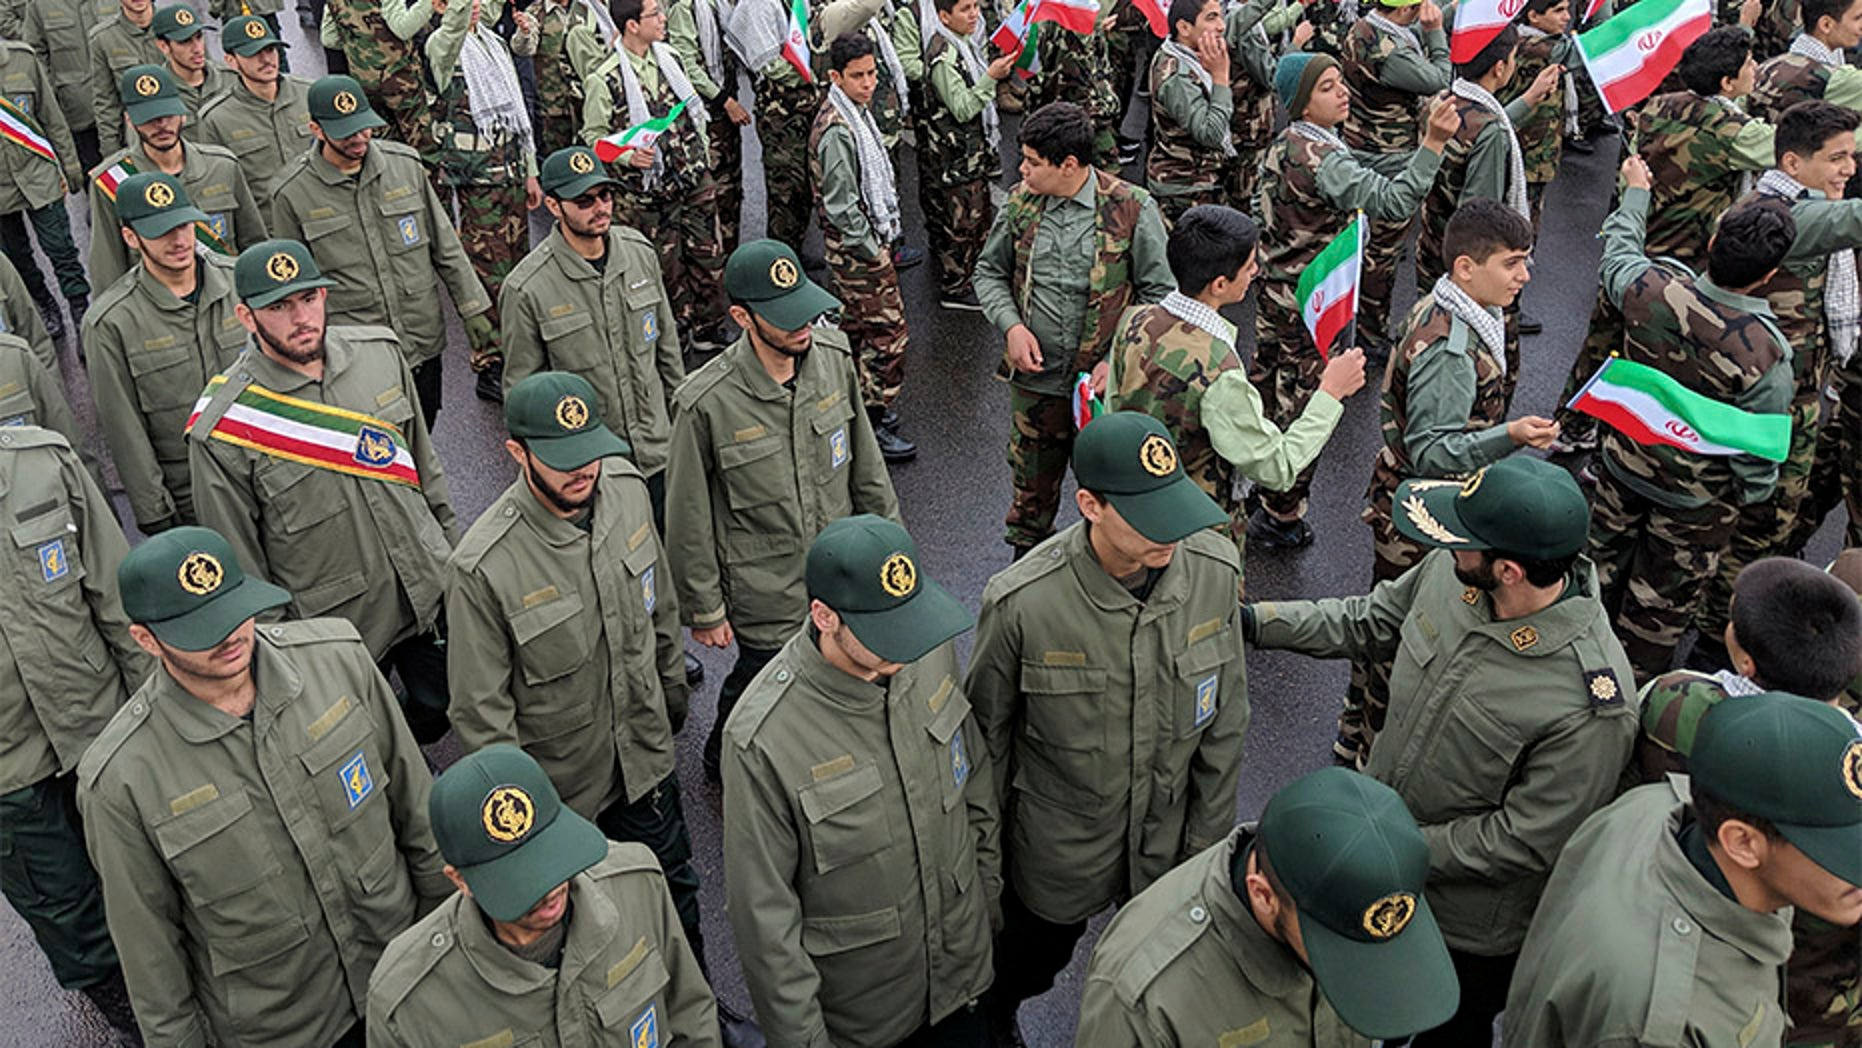 School students wave their national flags as Revolutionary Guard members arrive in Azadi, freedom square, during a ceremony celebrating the 40th anniversary of Islamic Revolution, in Tehran, Iran, on Monday.